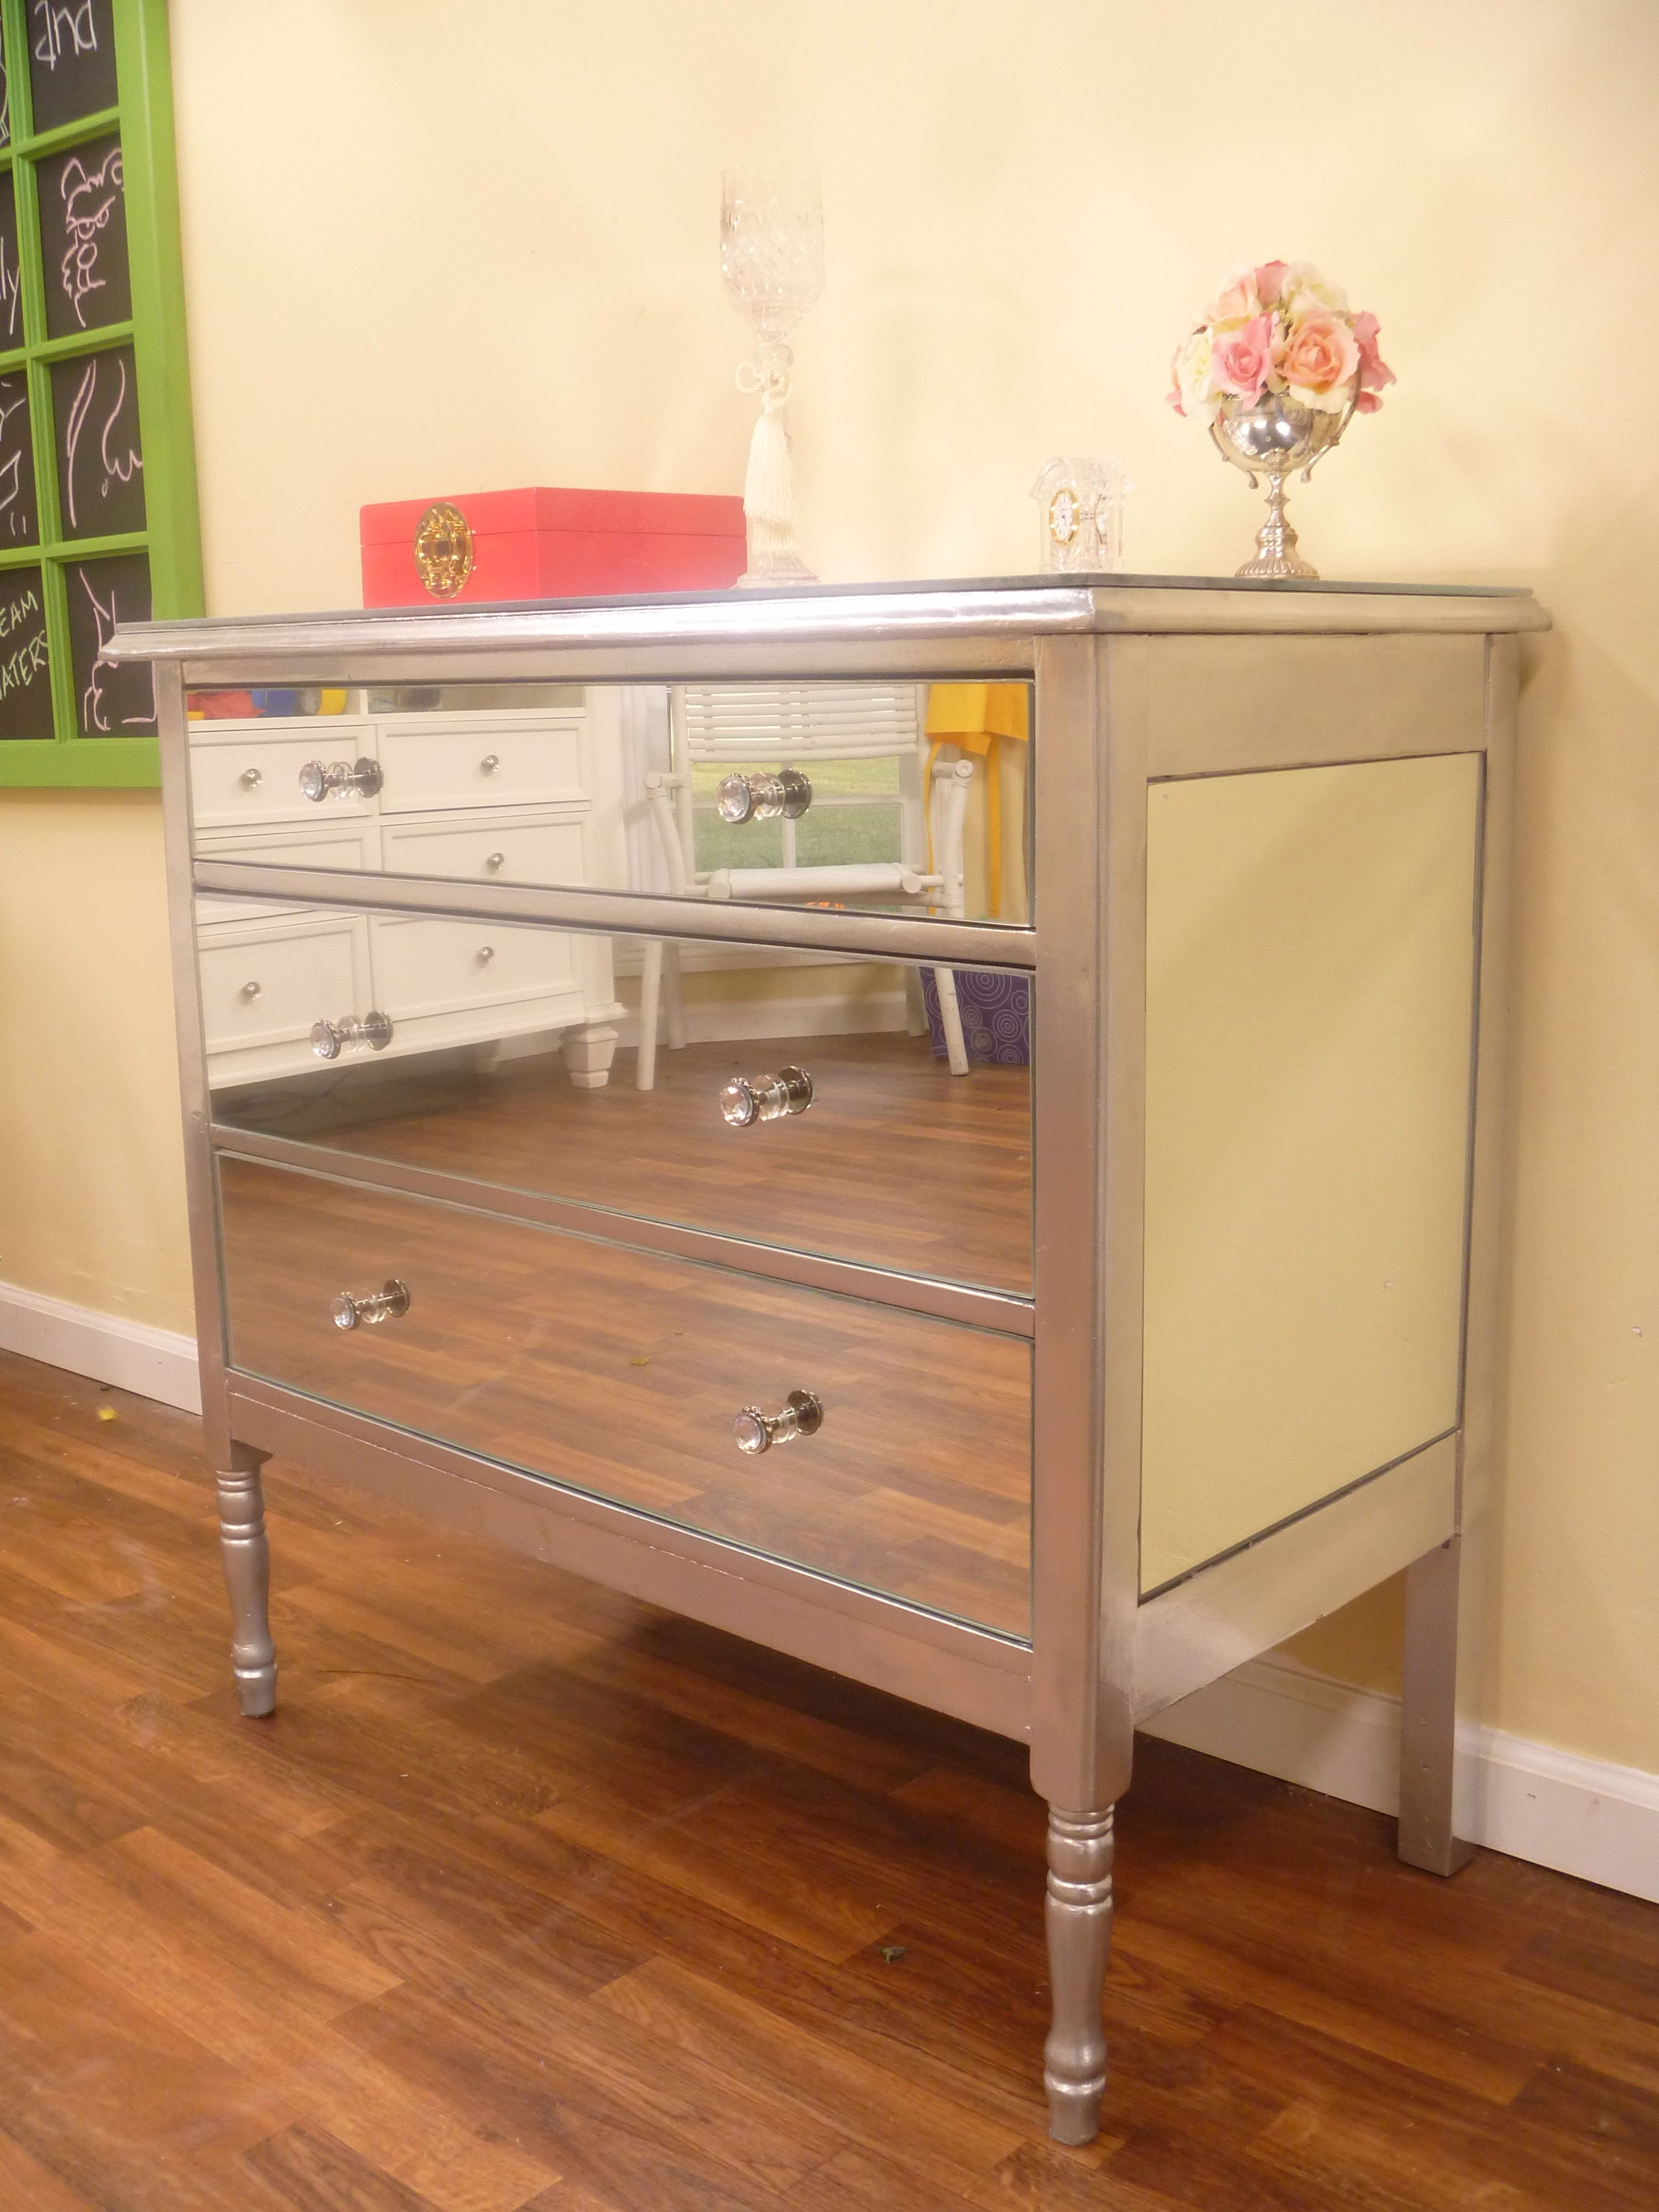 Mirrored Bedside Table With Drawers: Diy Mirrored Furniture, Mirrored